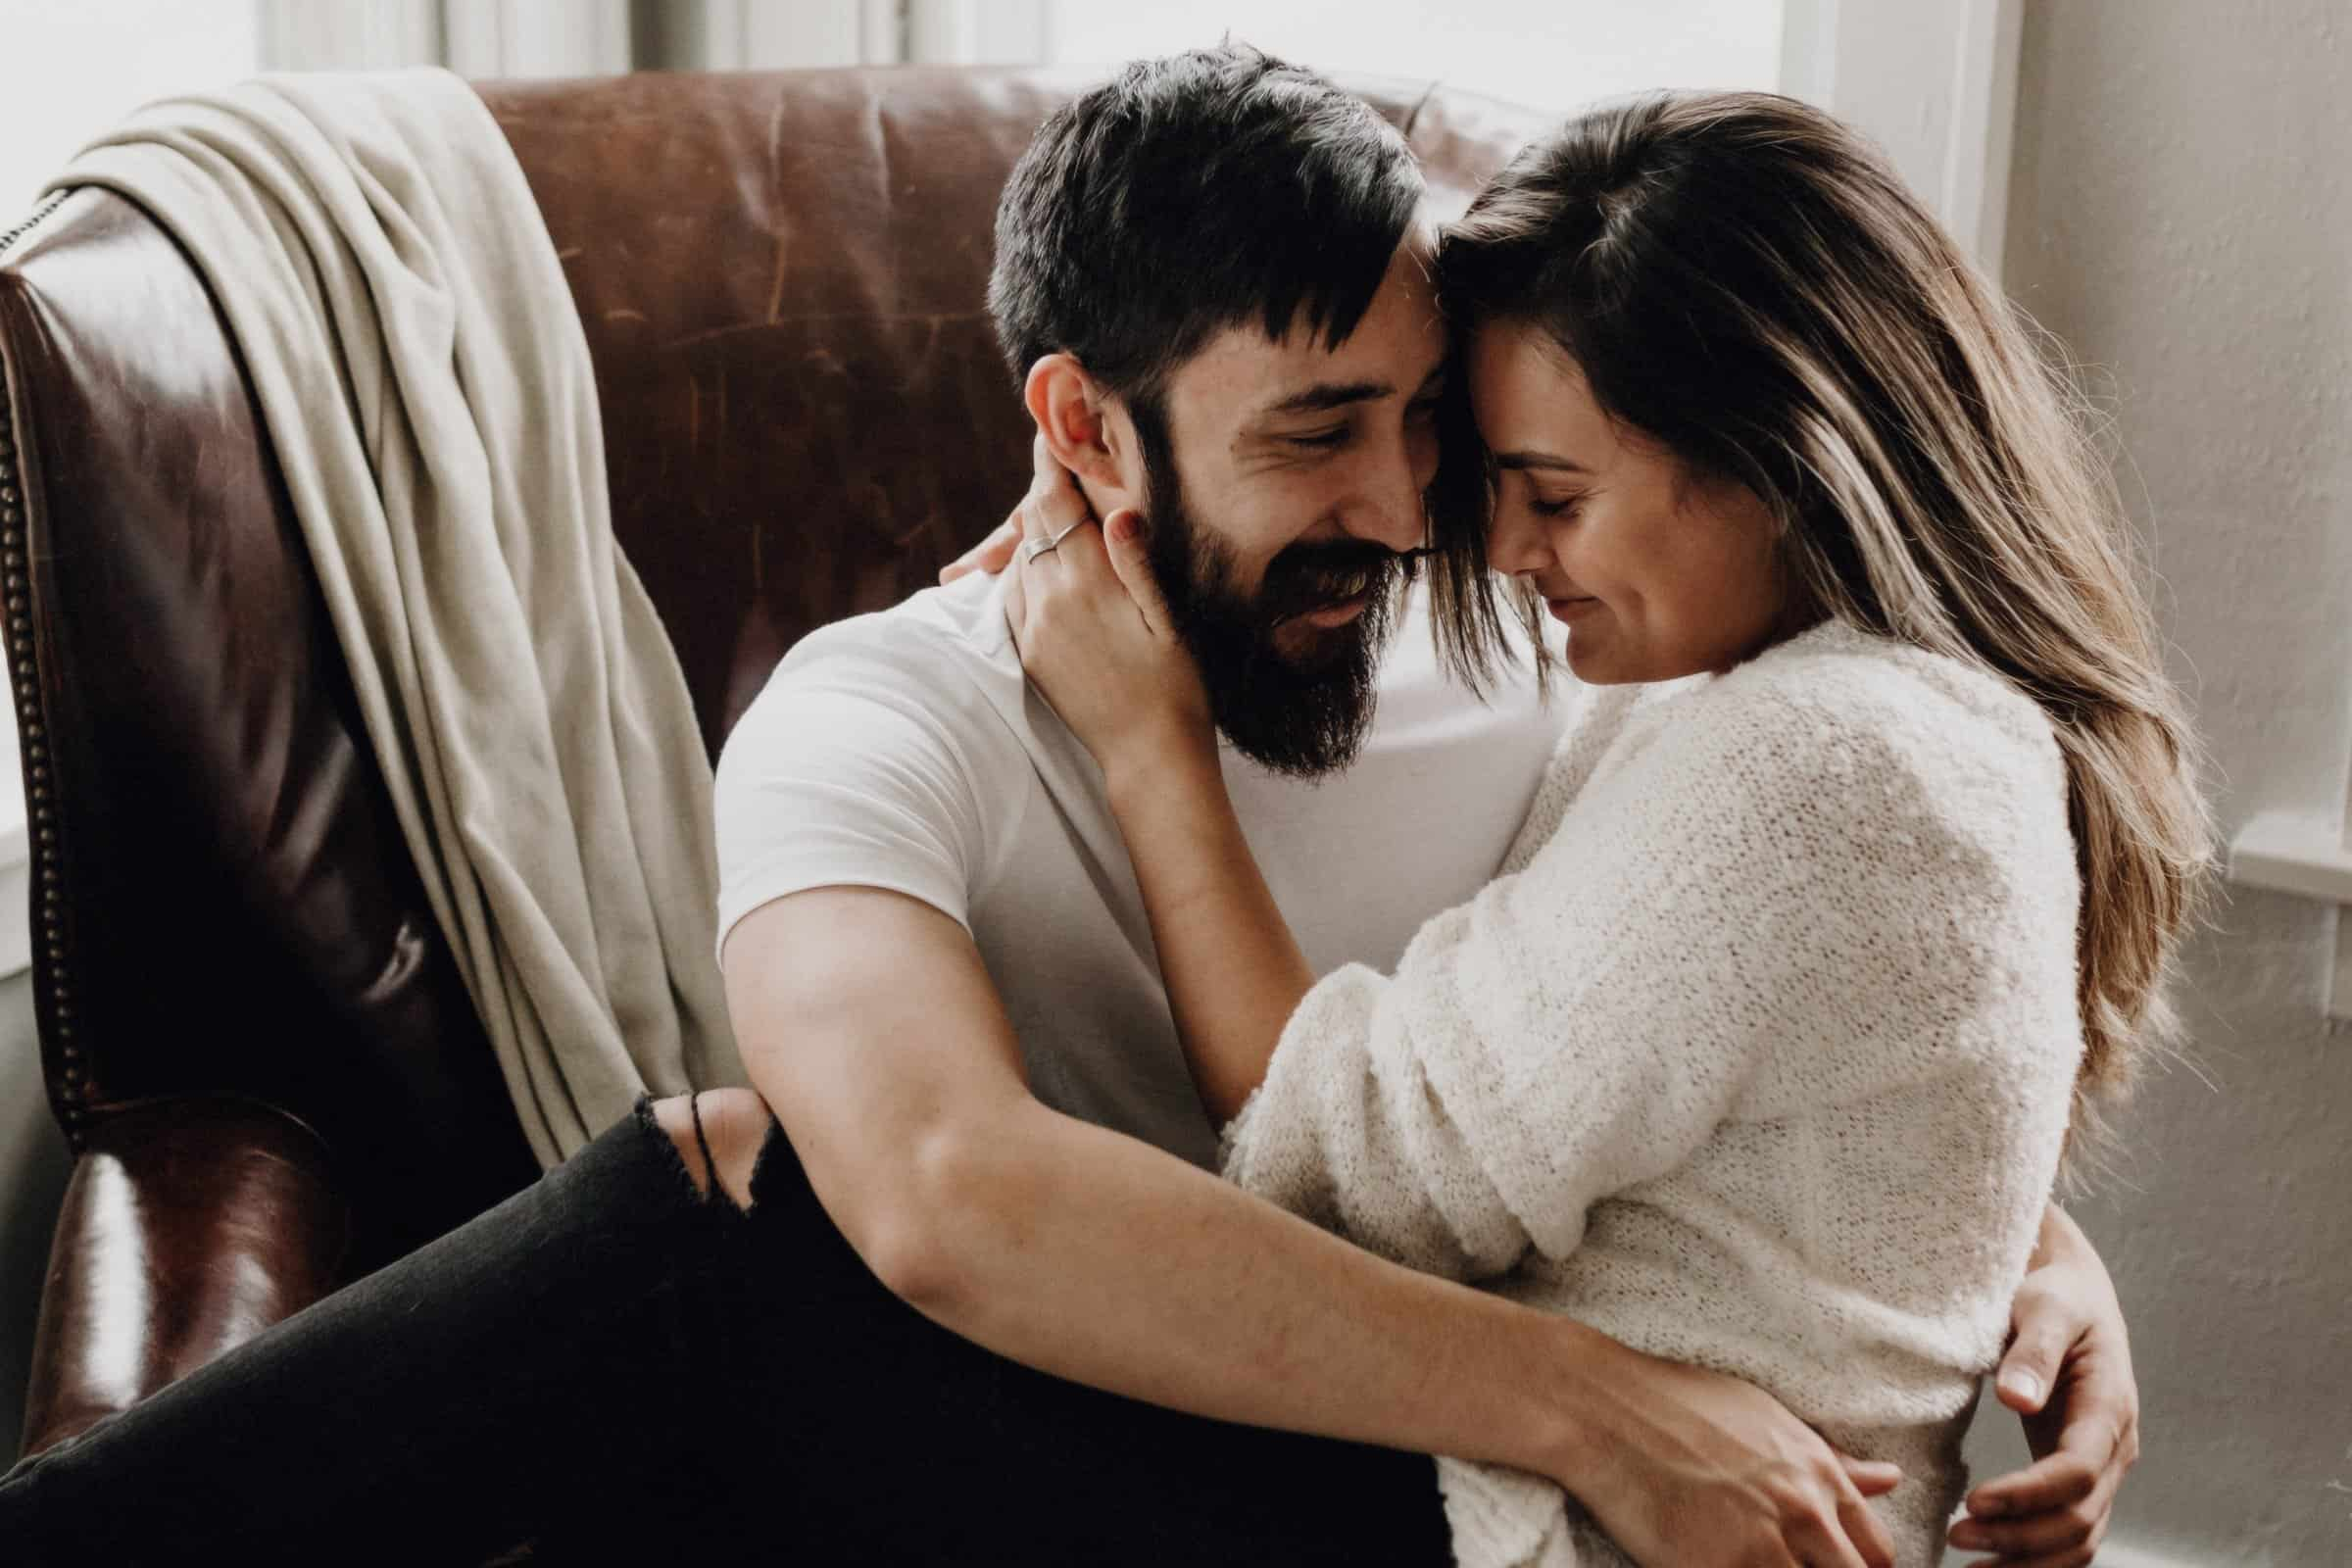 couple hugging and laughing together as the girl sits in the guy's lap.